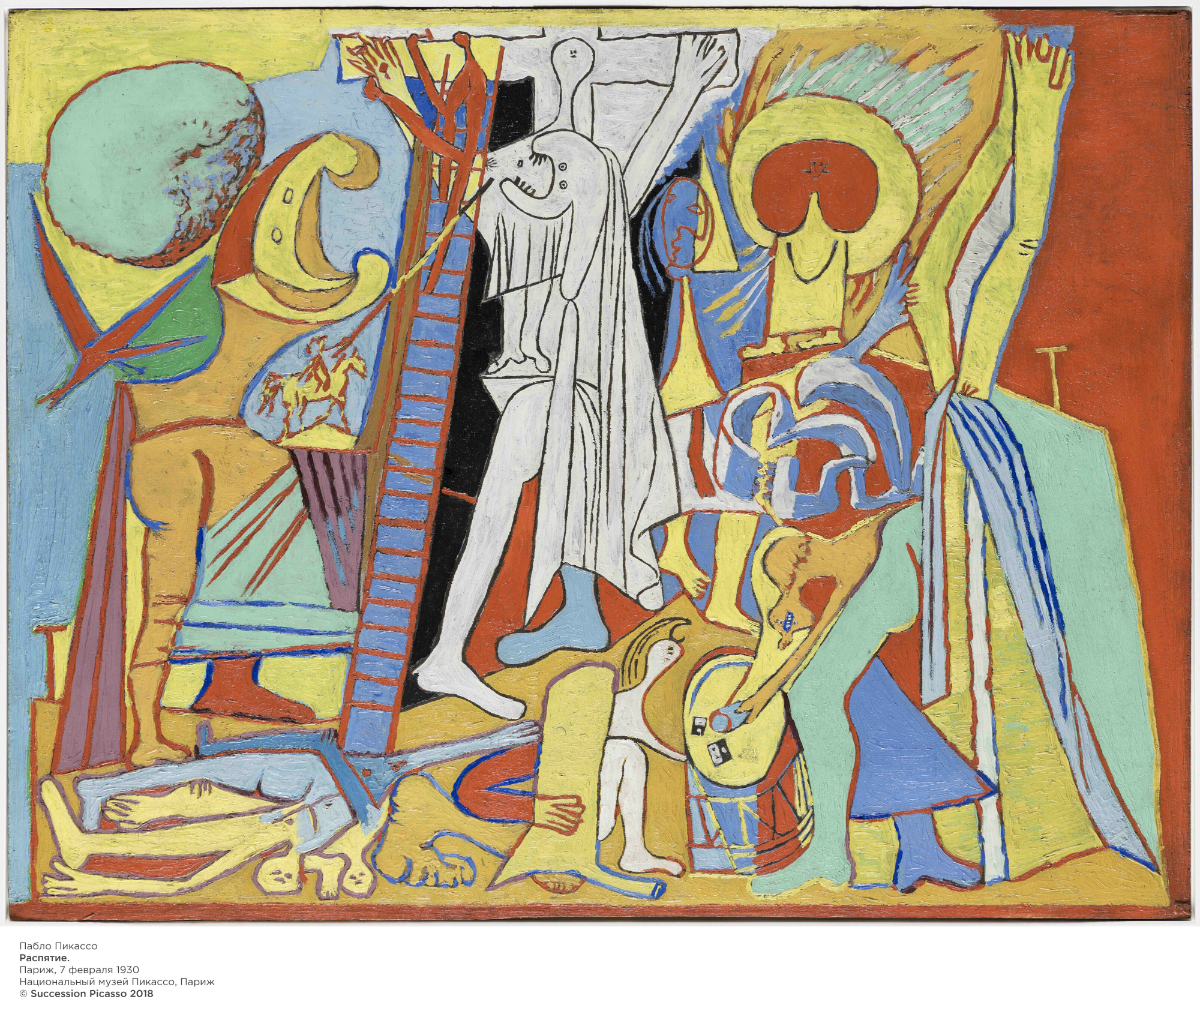 picasso moscow exhibition 1